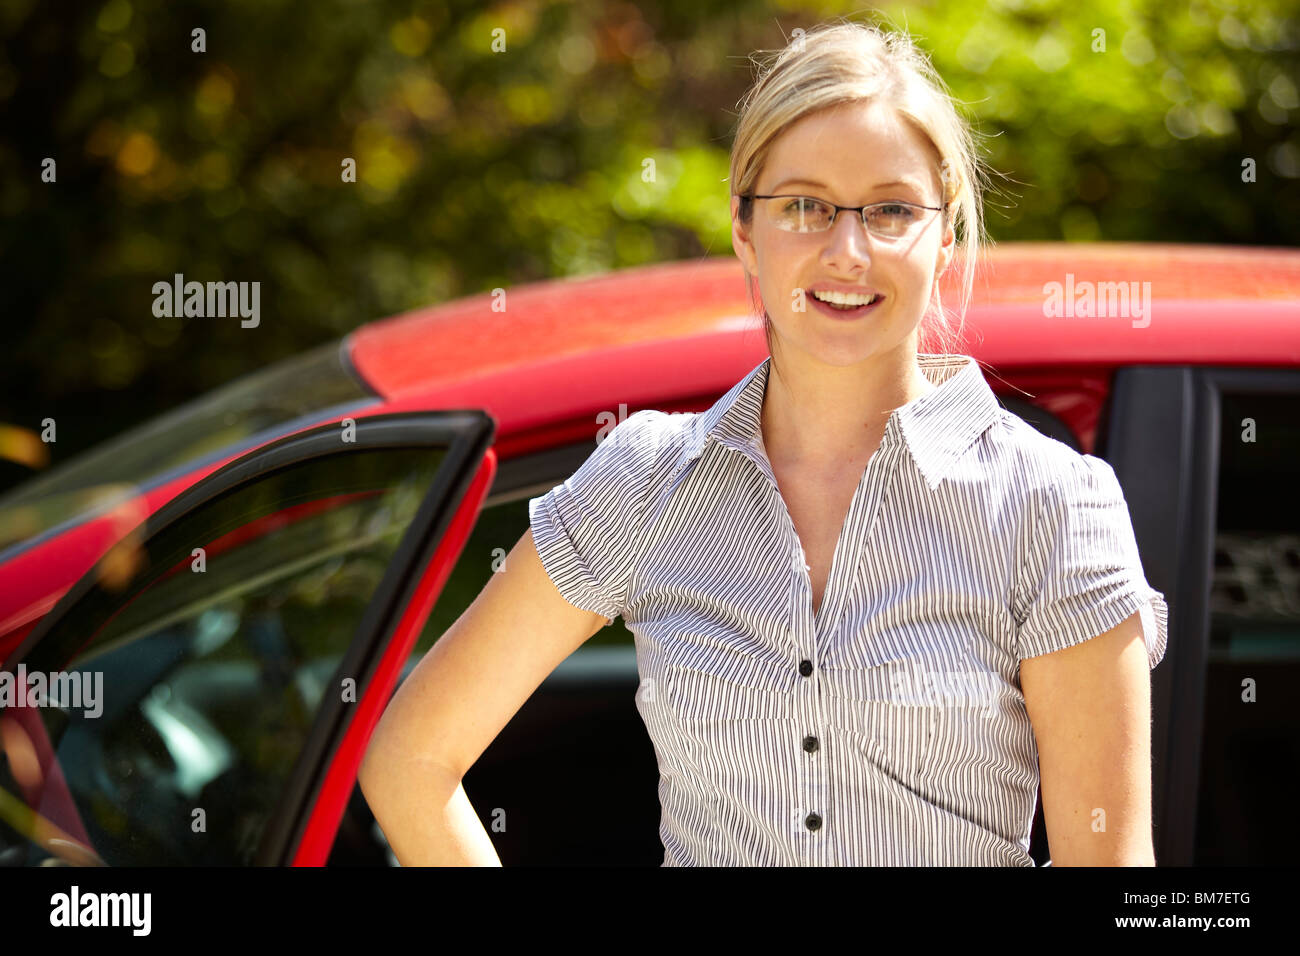 Girl going to work - Stock Image